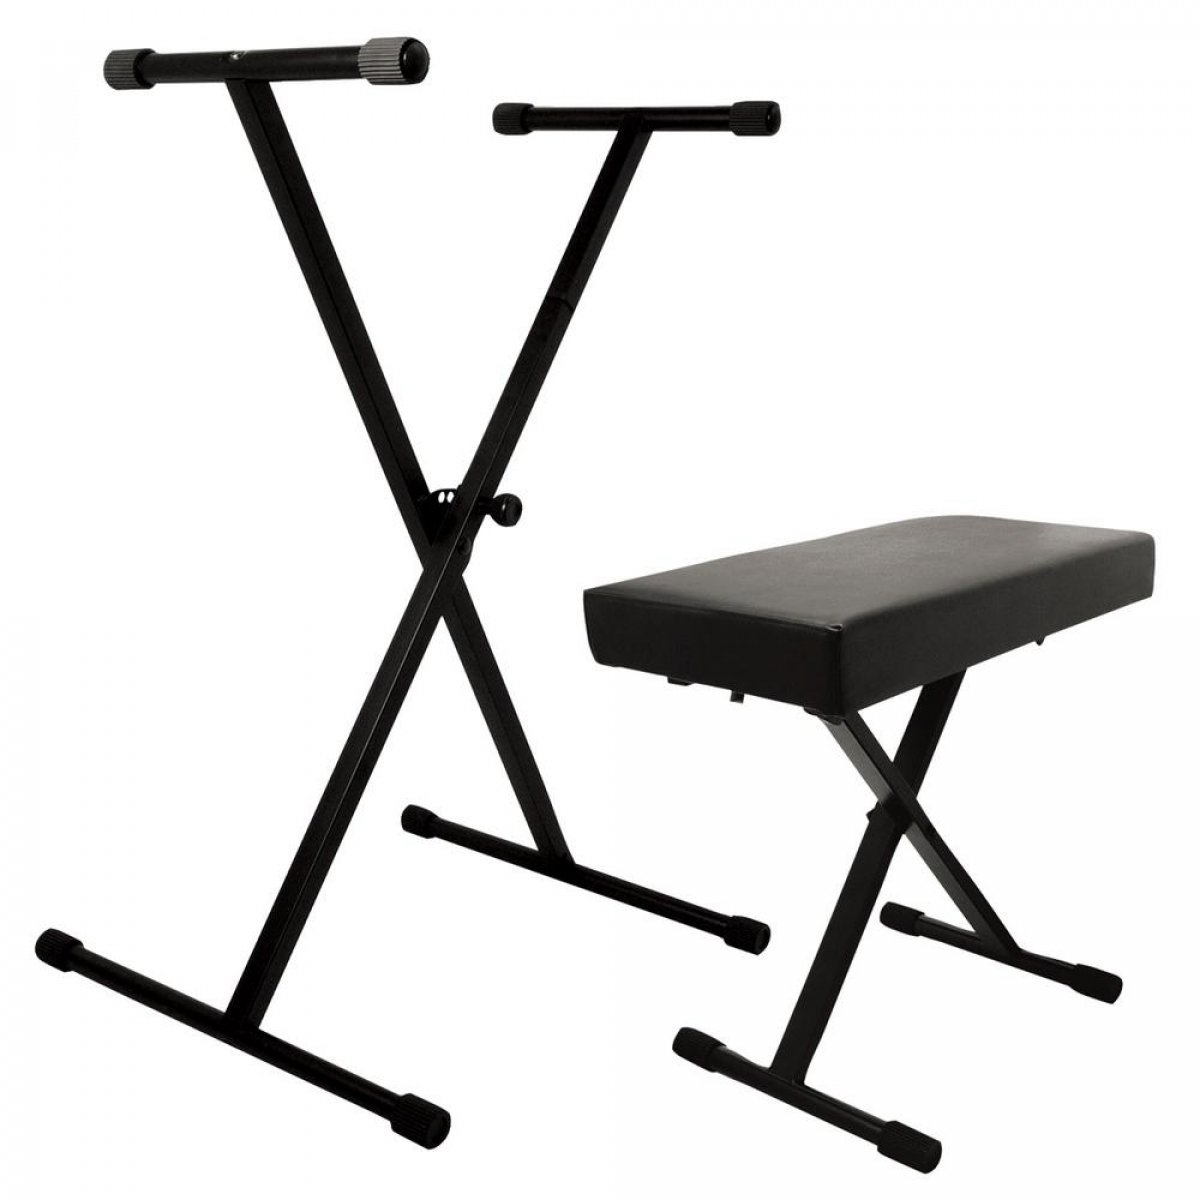 OnStage Keyboard Stand and Bench Pack